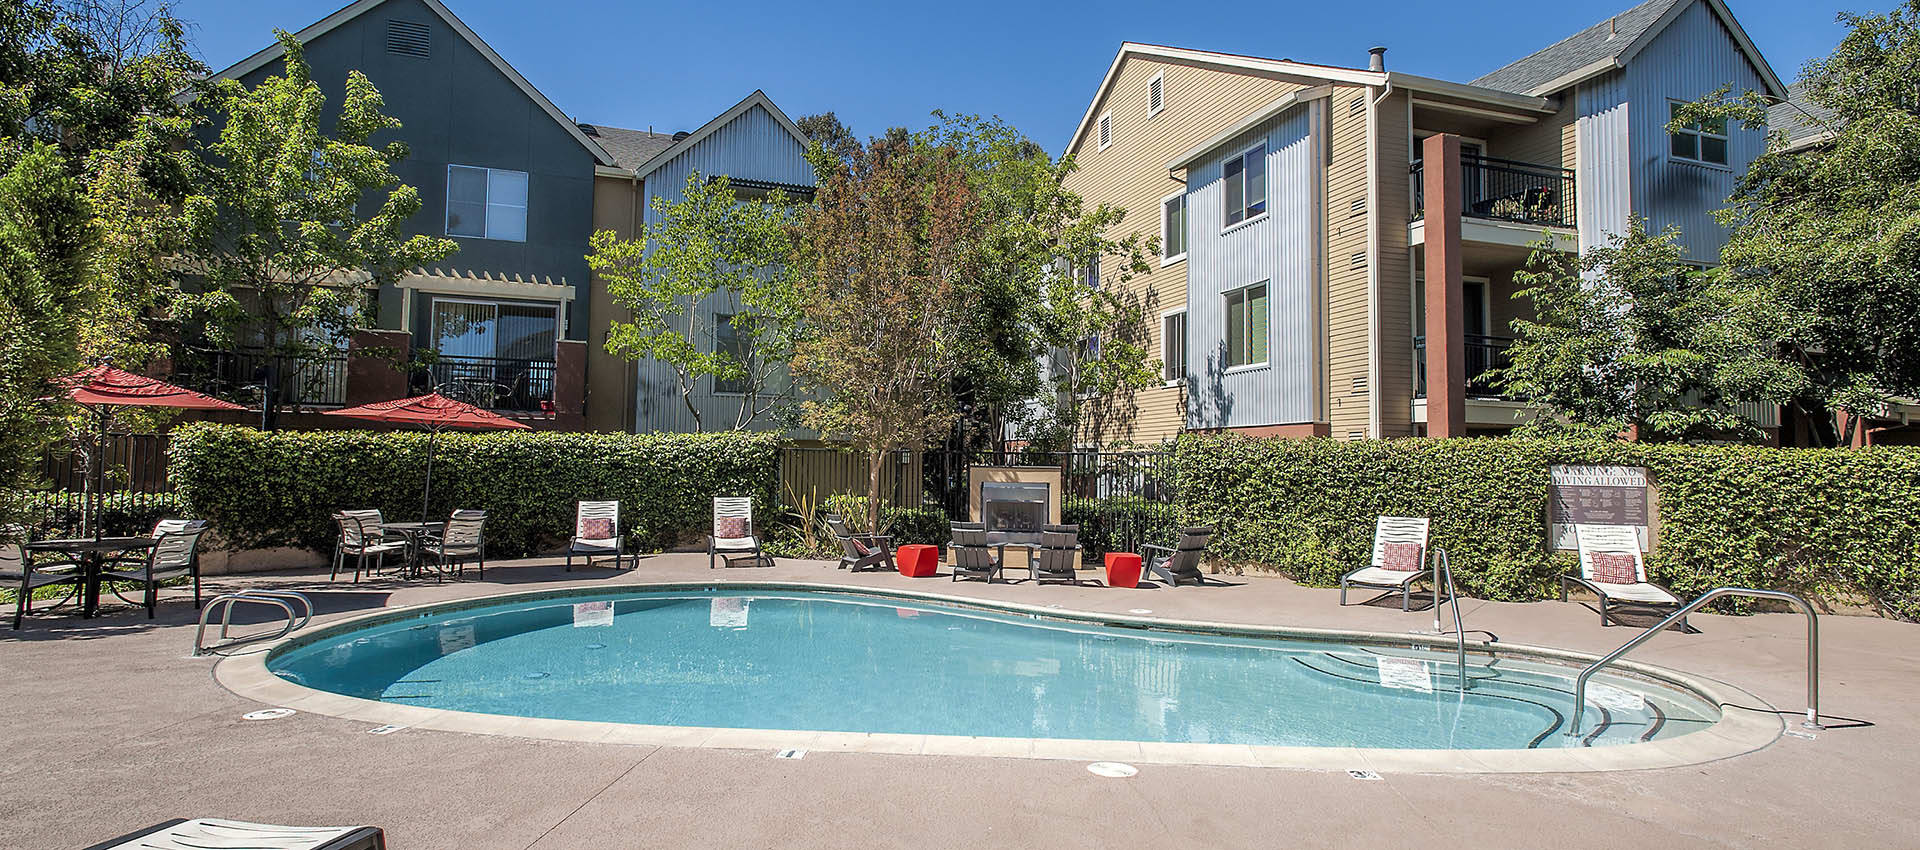 Expansive Pool Deck With Spa at Azure Apartment Homes in Petaluma, California